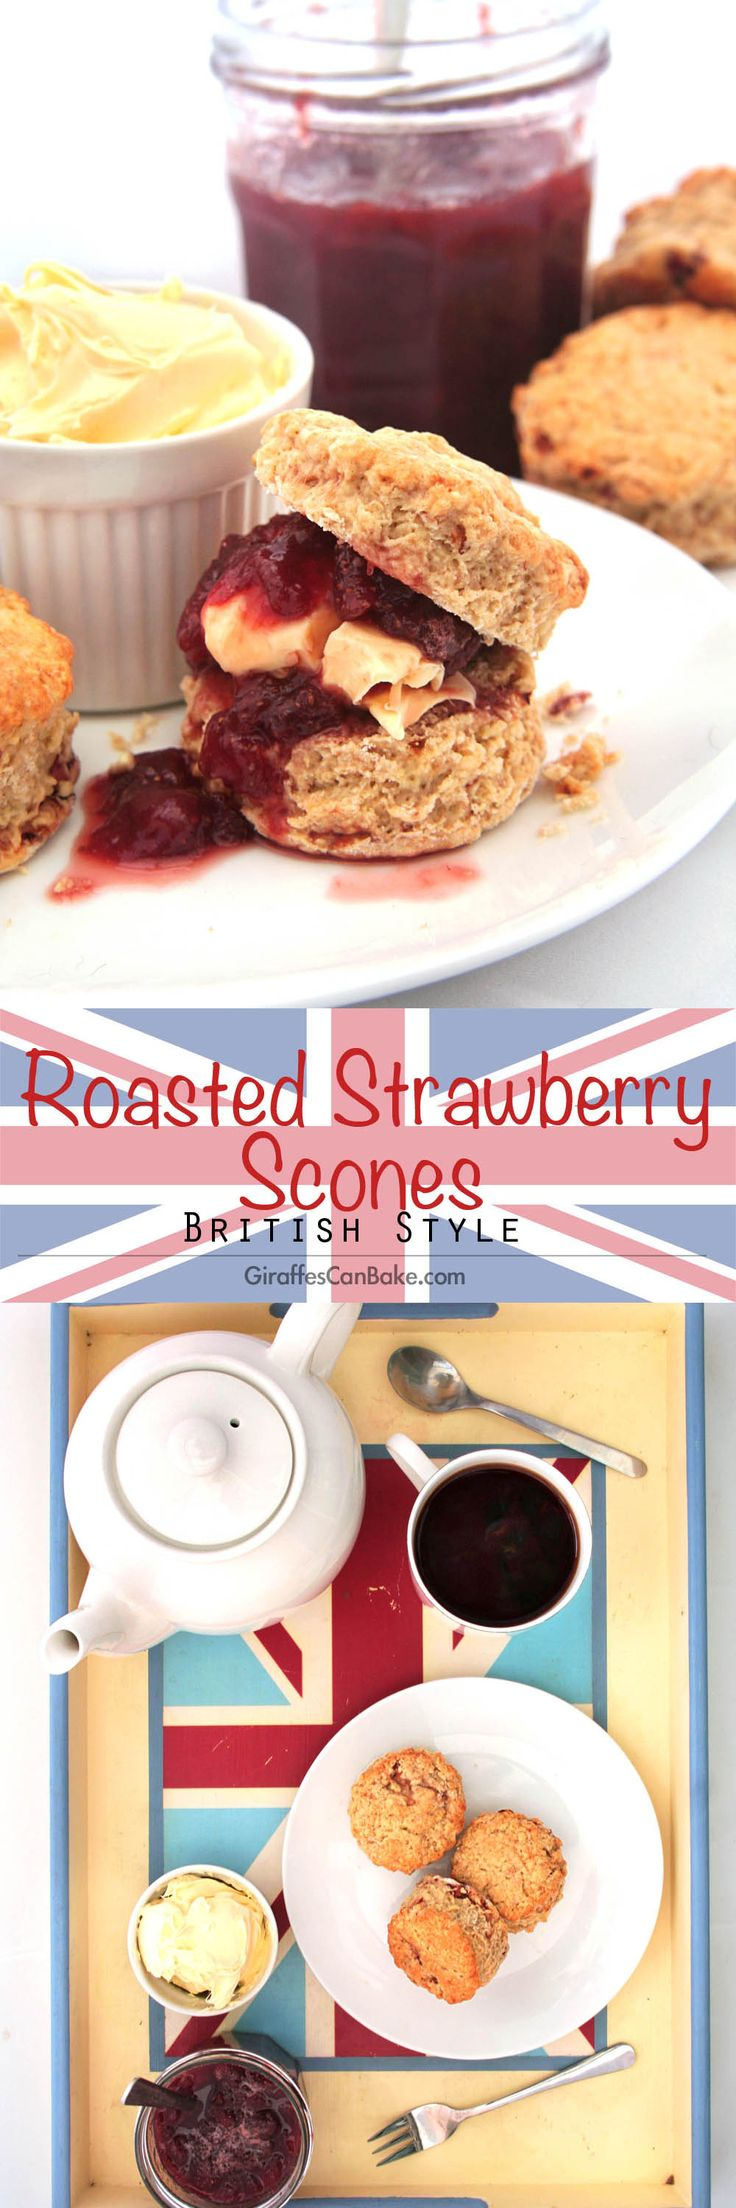 Roasted Strawberry British Scones by Giraffes Can Bake - short, crumbly scones with roasted strawberries baked right in. So easy and quick to make, you can't go wrong. Serve with jam, clotted cream and a cup of tea for your very own homemade Devonshire or Cornish Cream Tea